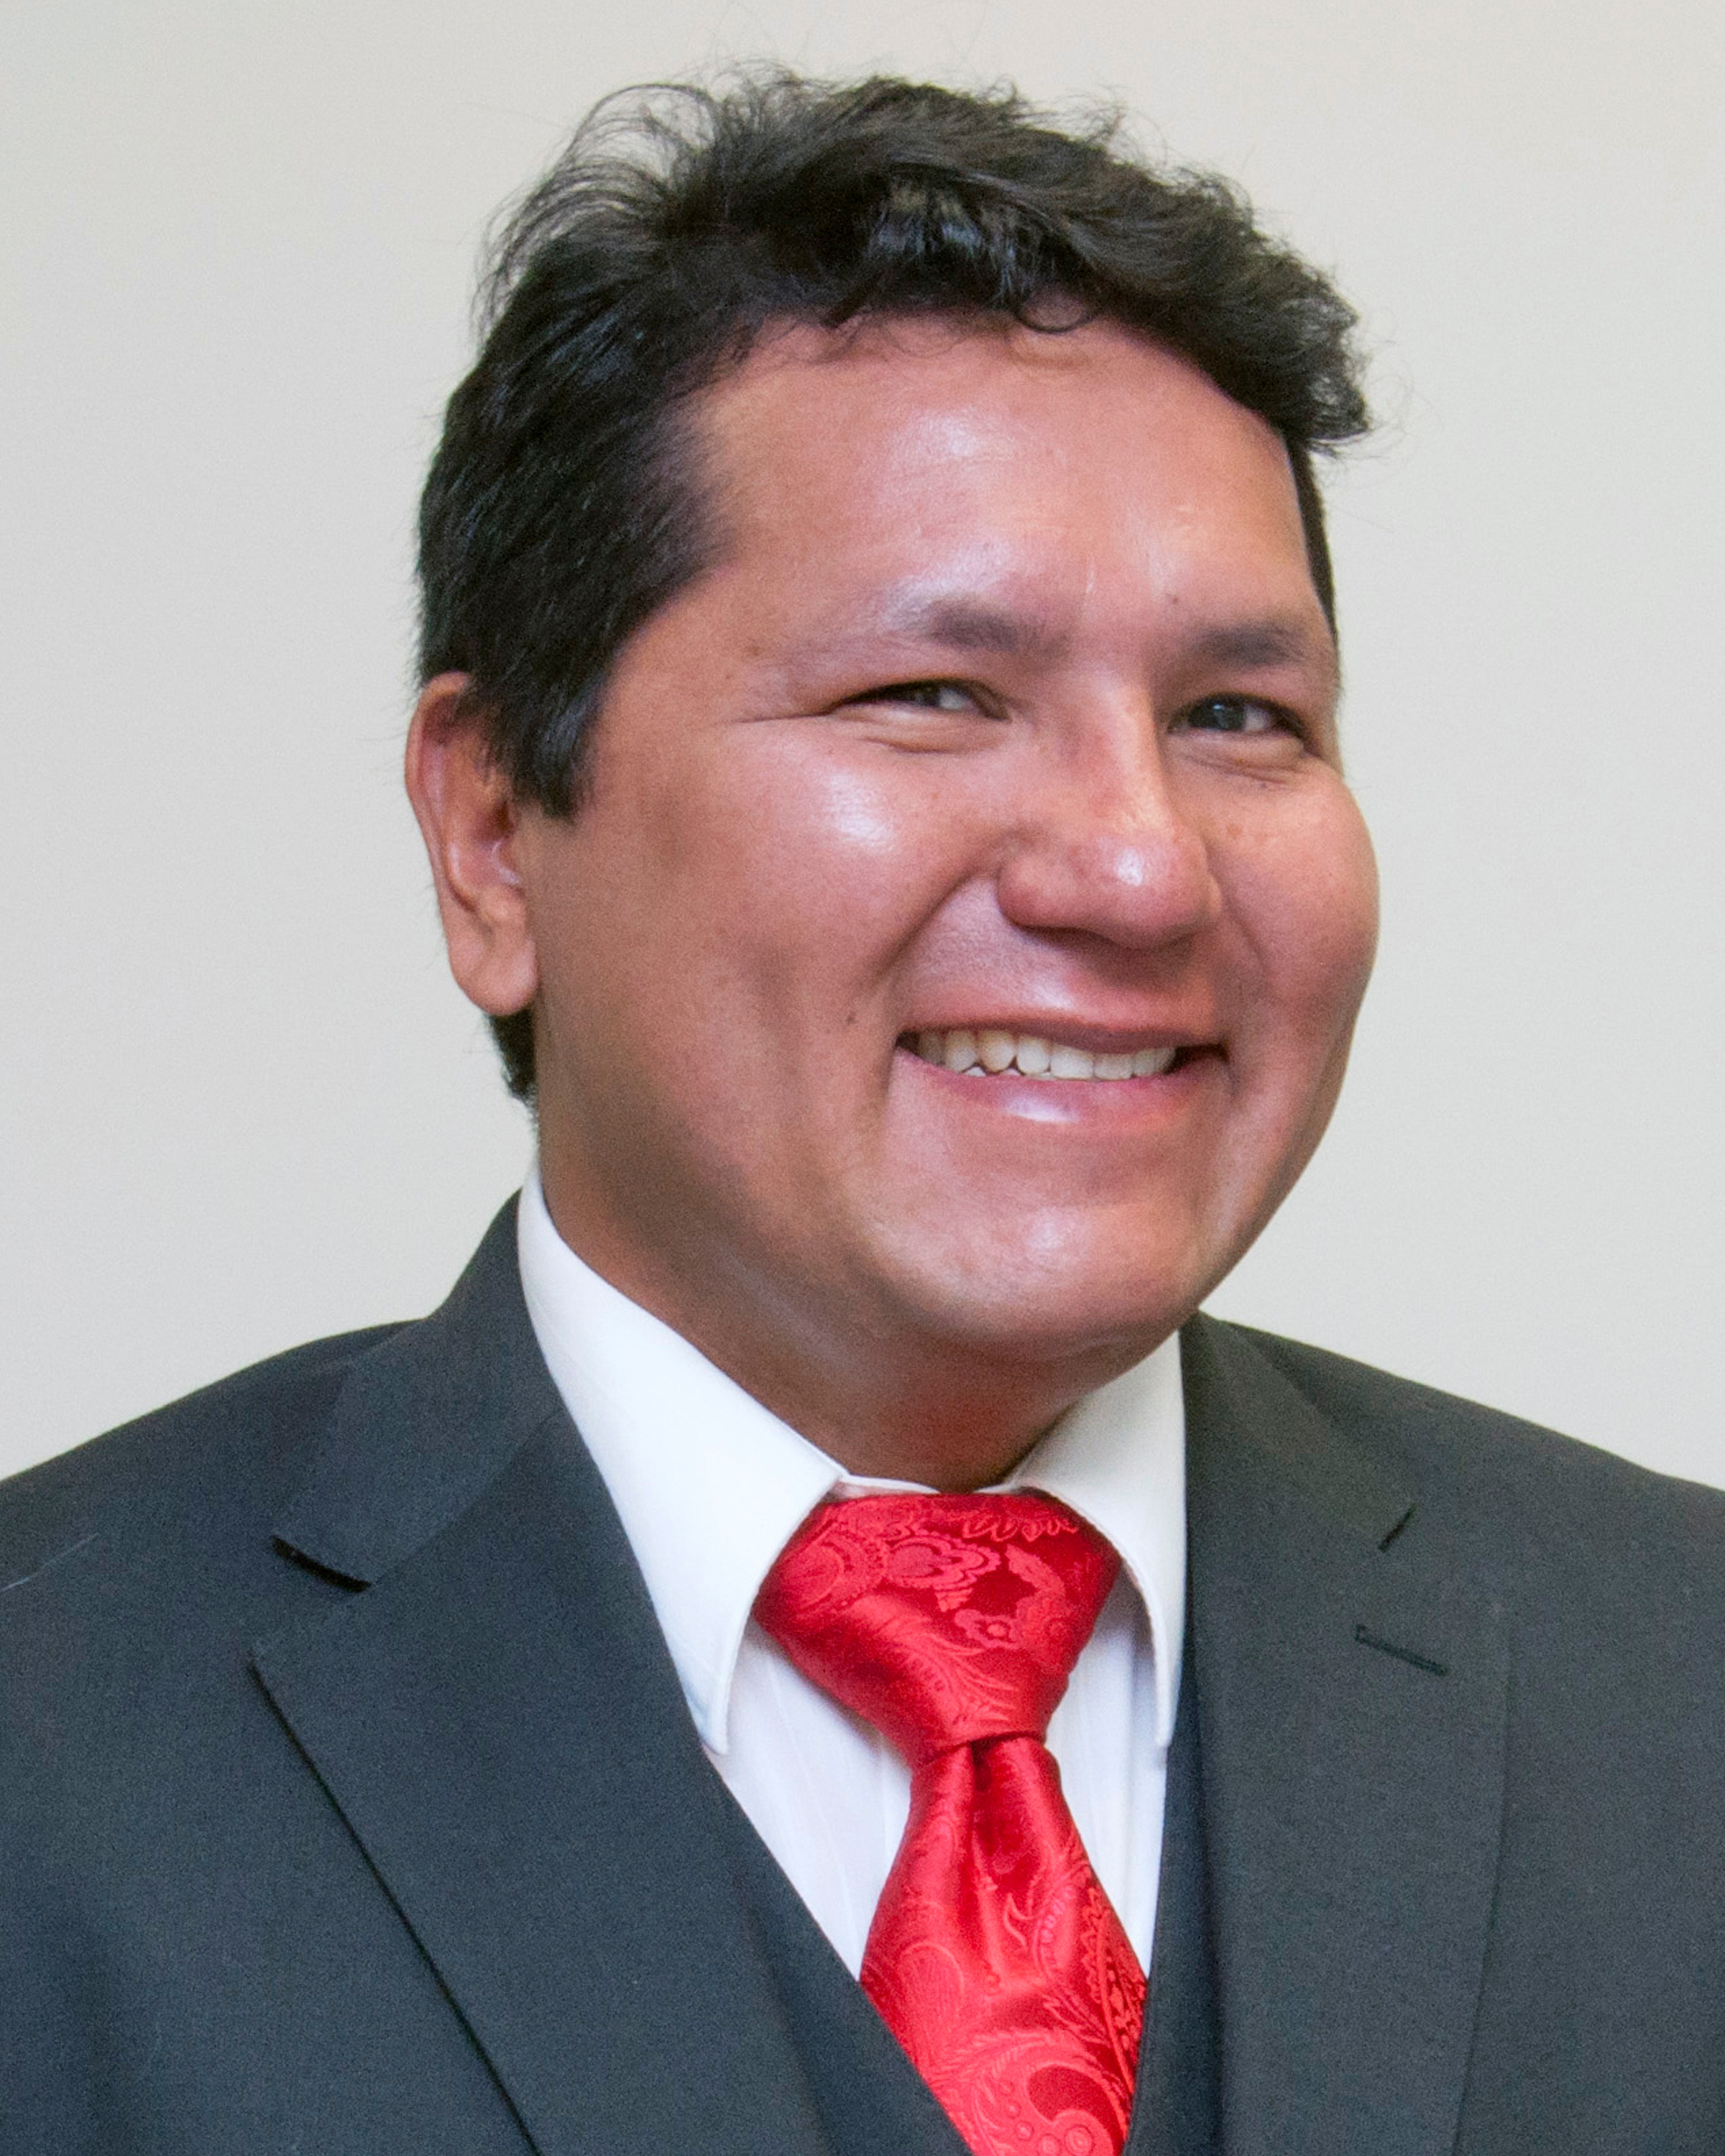 Alderman David Villalobos